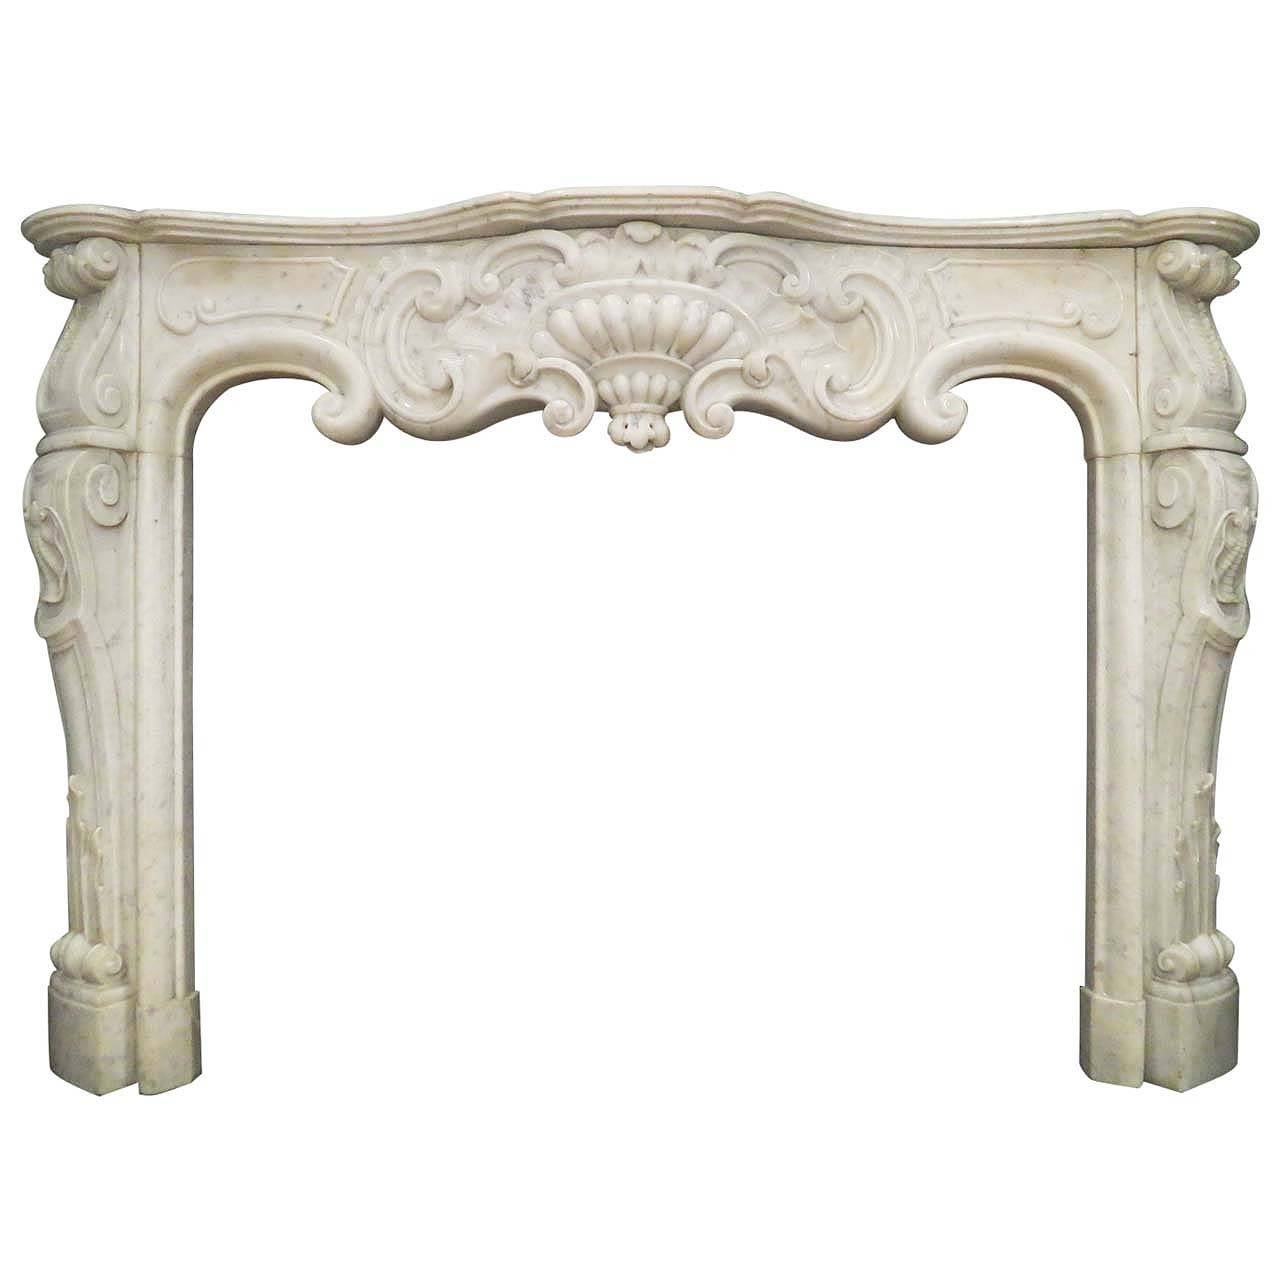 antique marble fireplace mantels. Antique Rococo Louis XV Marble Fireplace Mantel 1 For Sale at 1stdibs